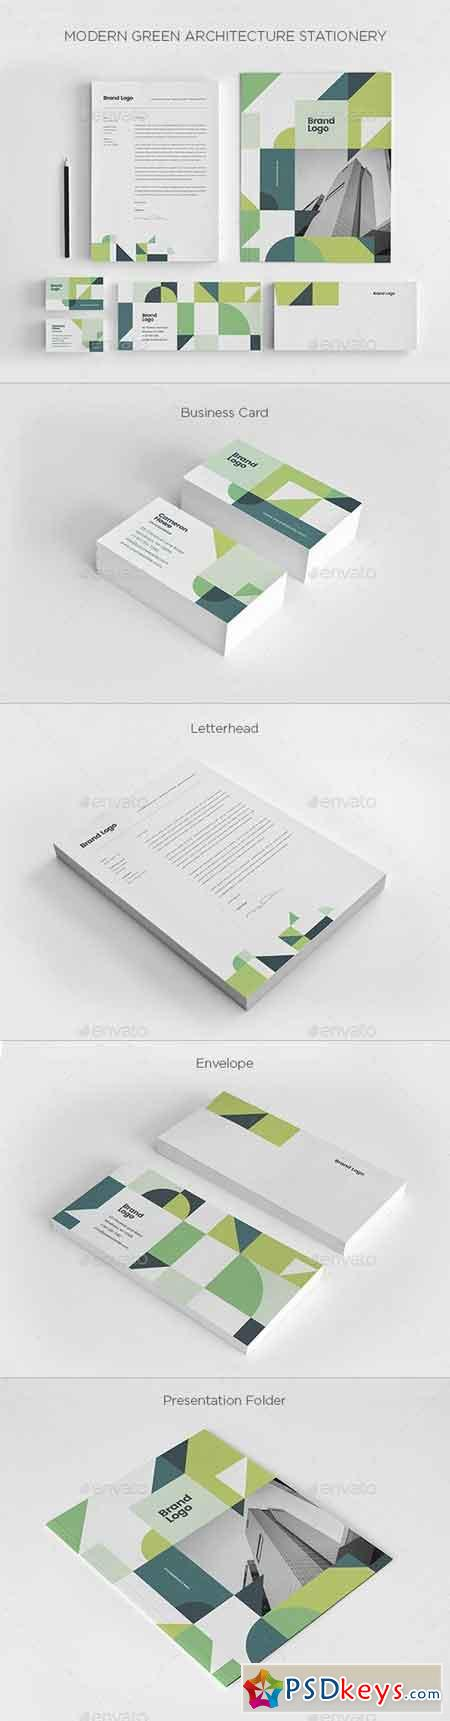 Modern Green Architecture Stationery 21226713